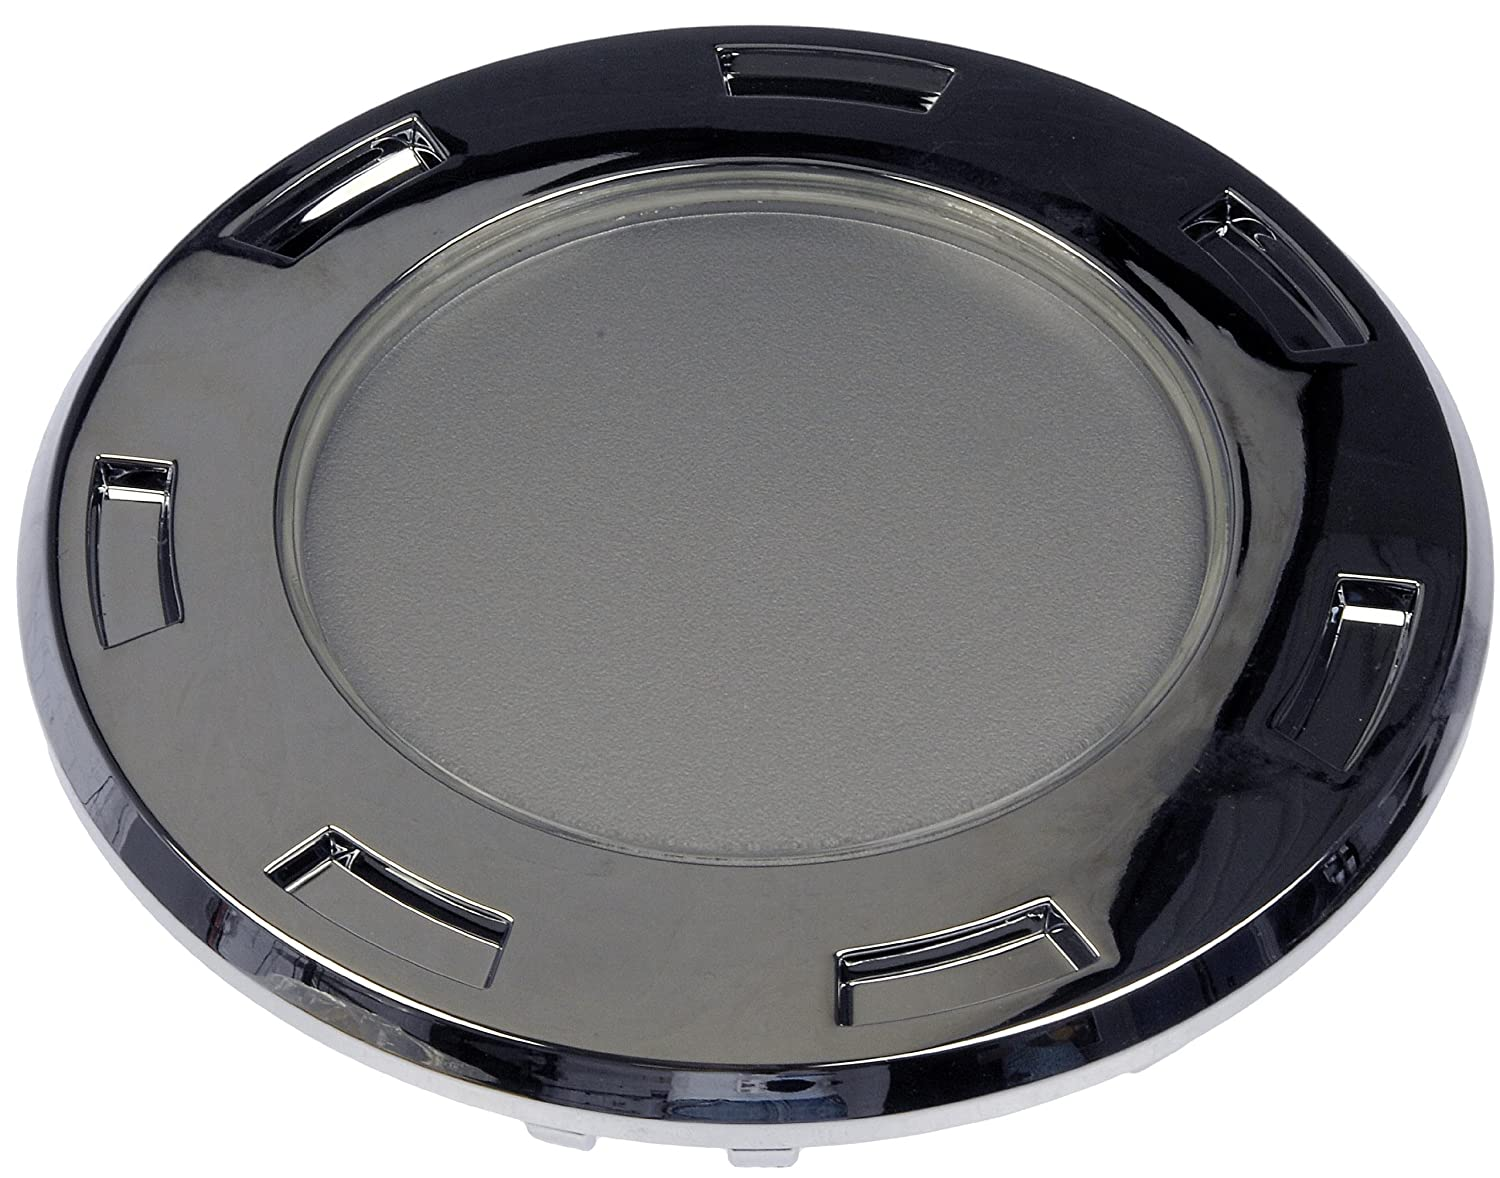 Dorman 909-012 Wheel Center Cap